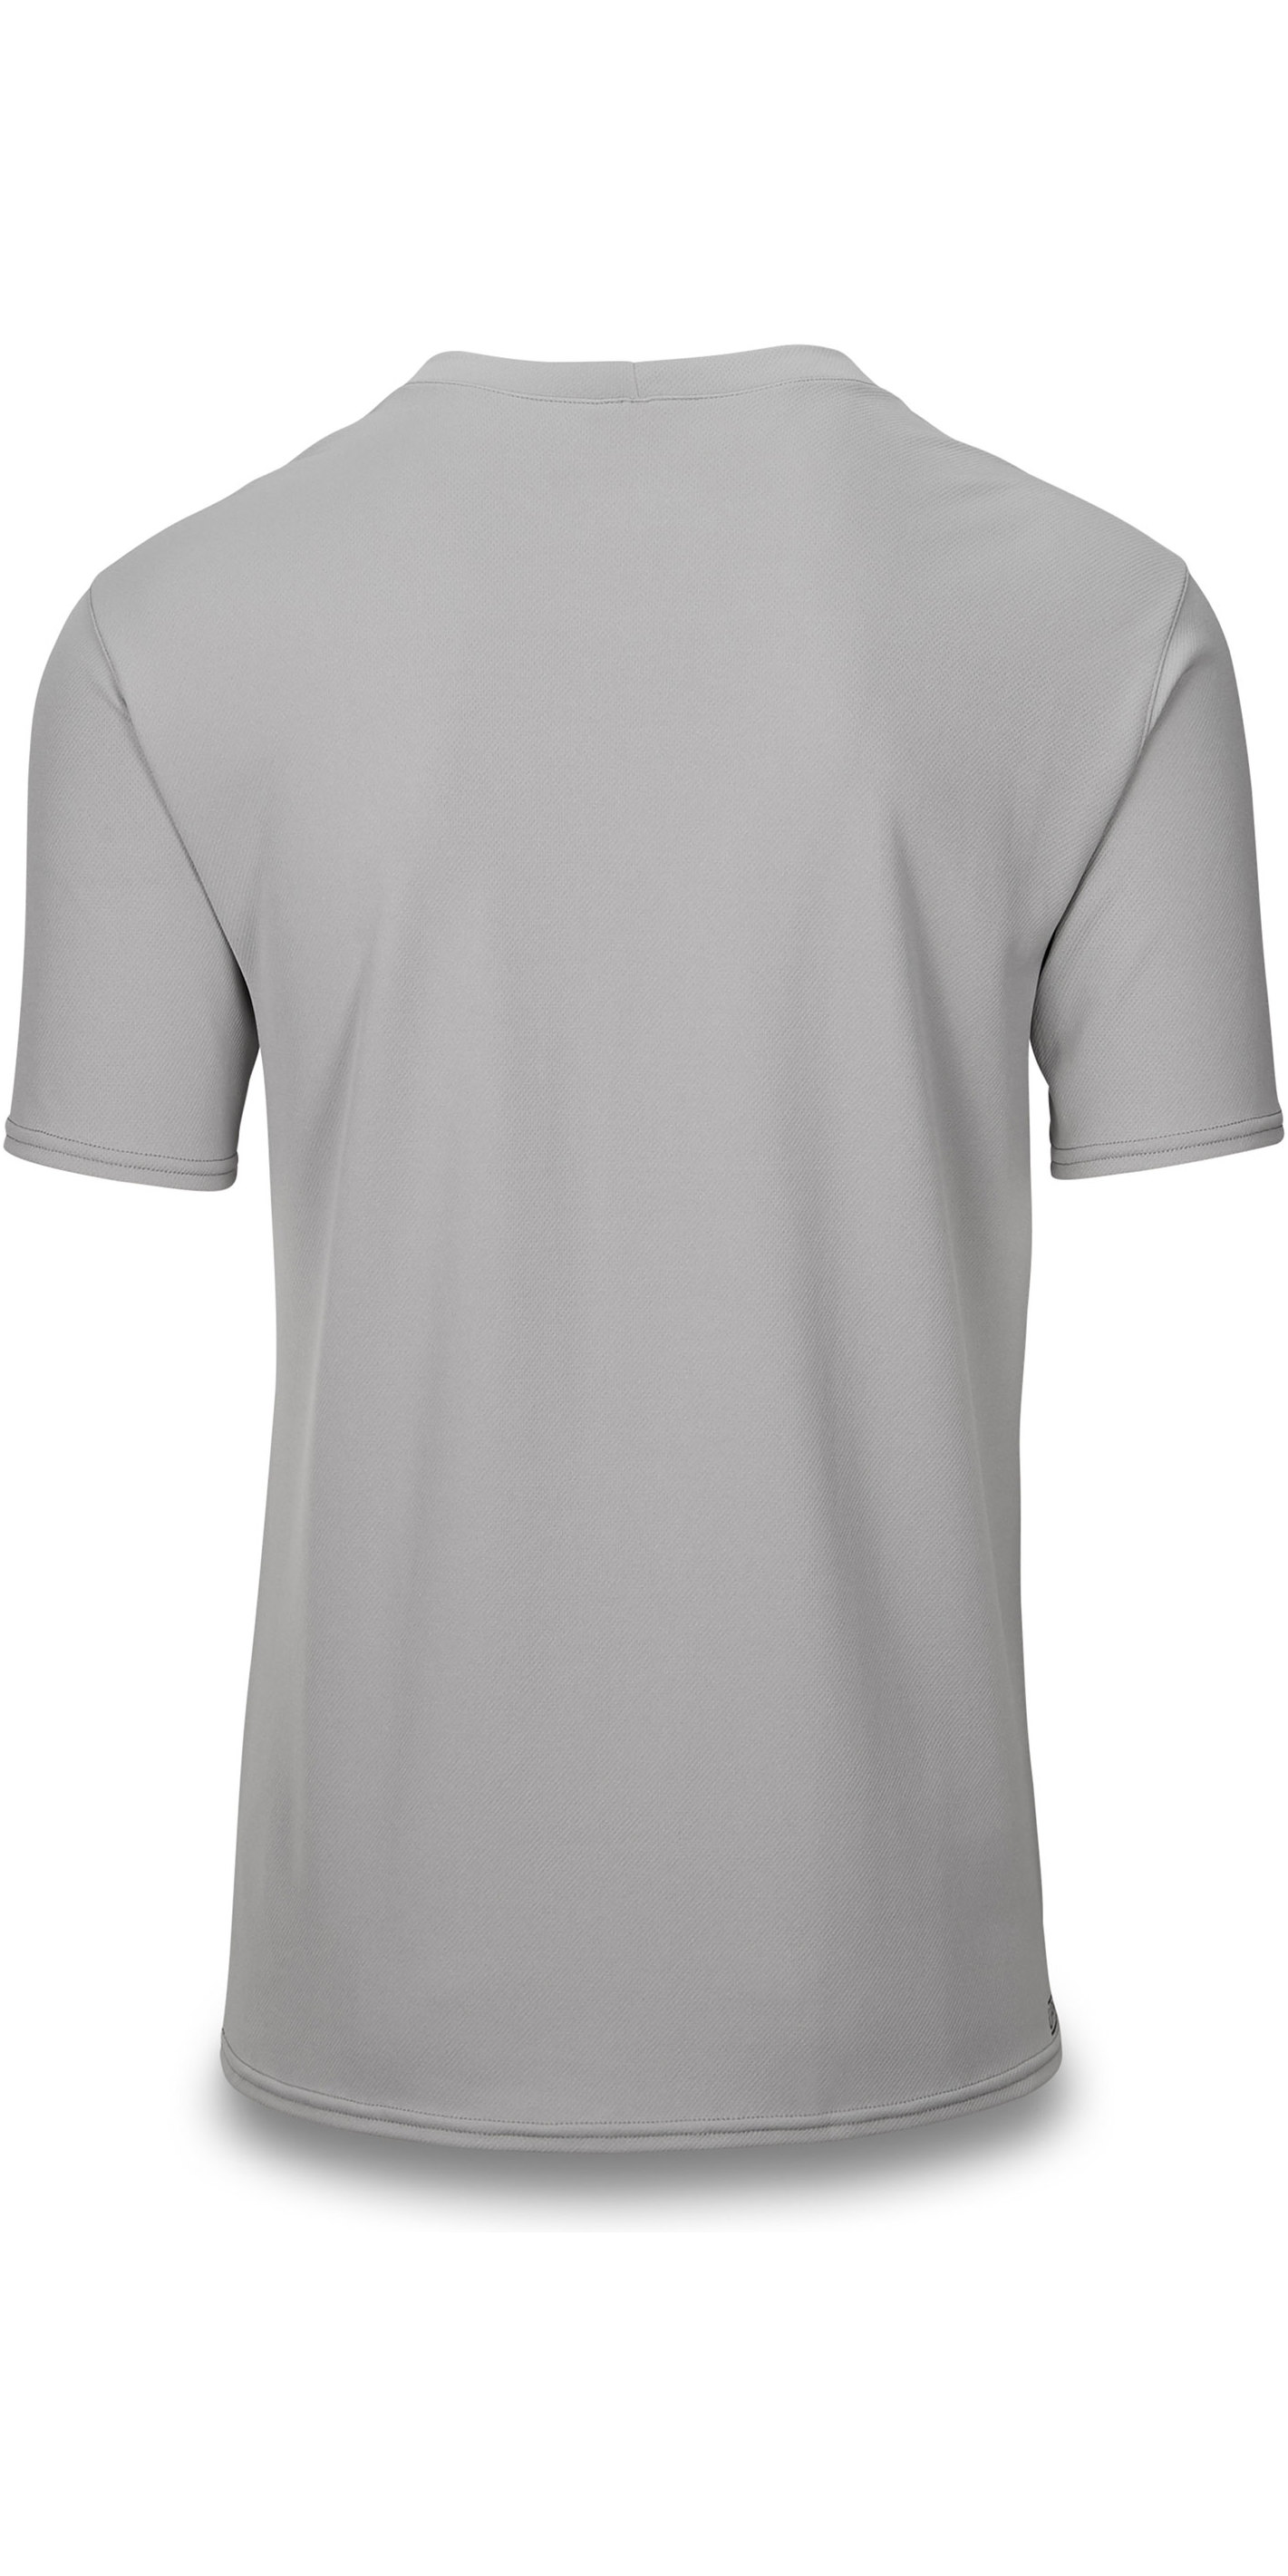 2019 Dakine Inlet Loose Fit Short Sleeve Top Carbon 10002286